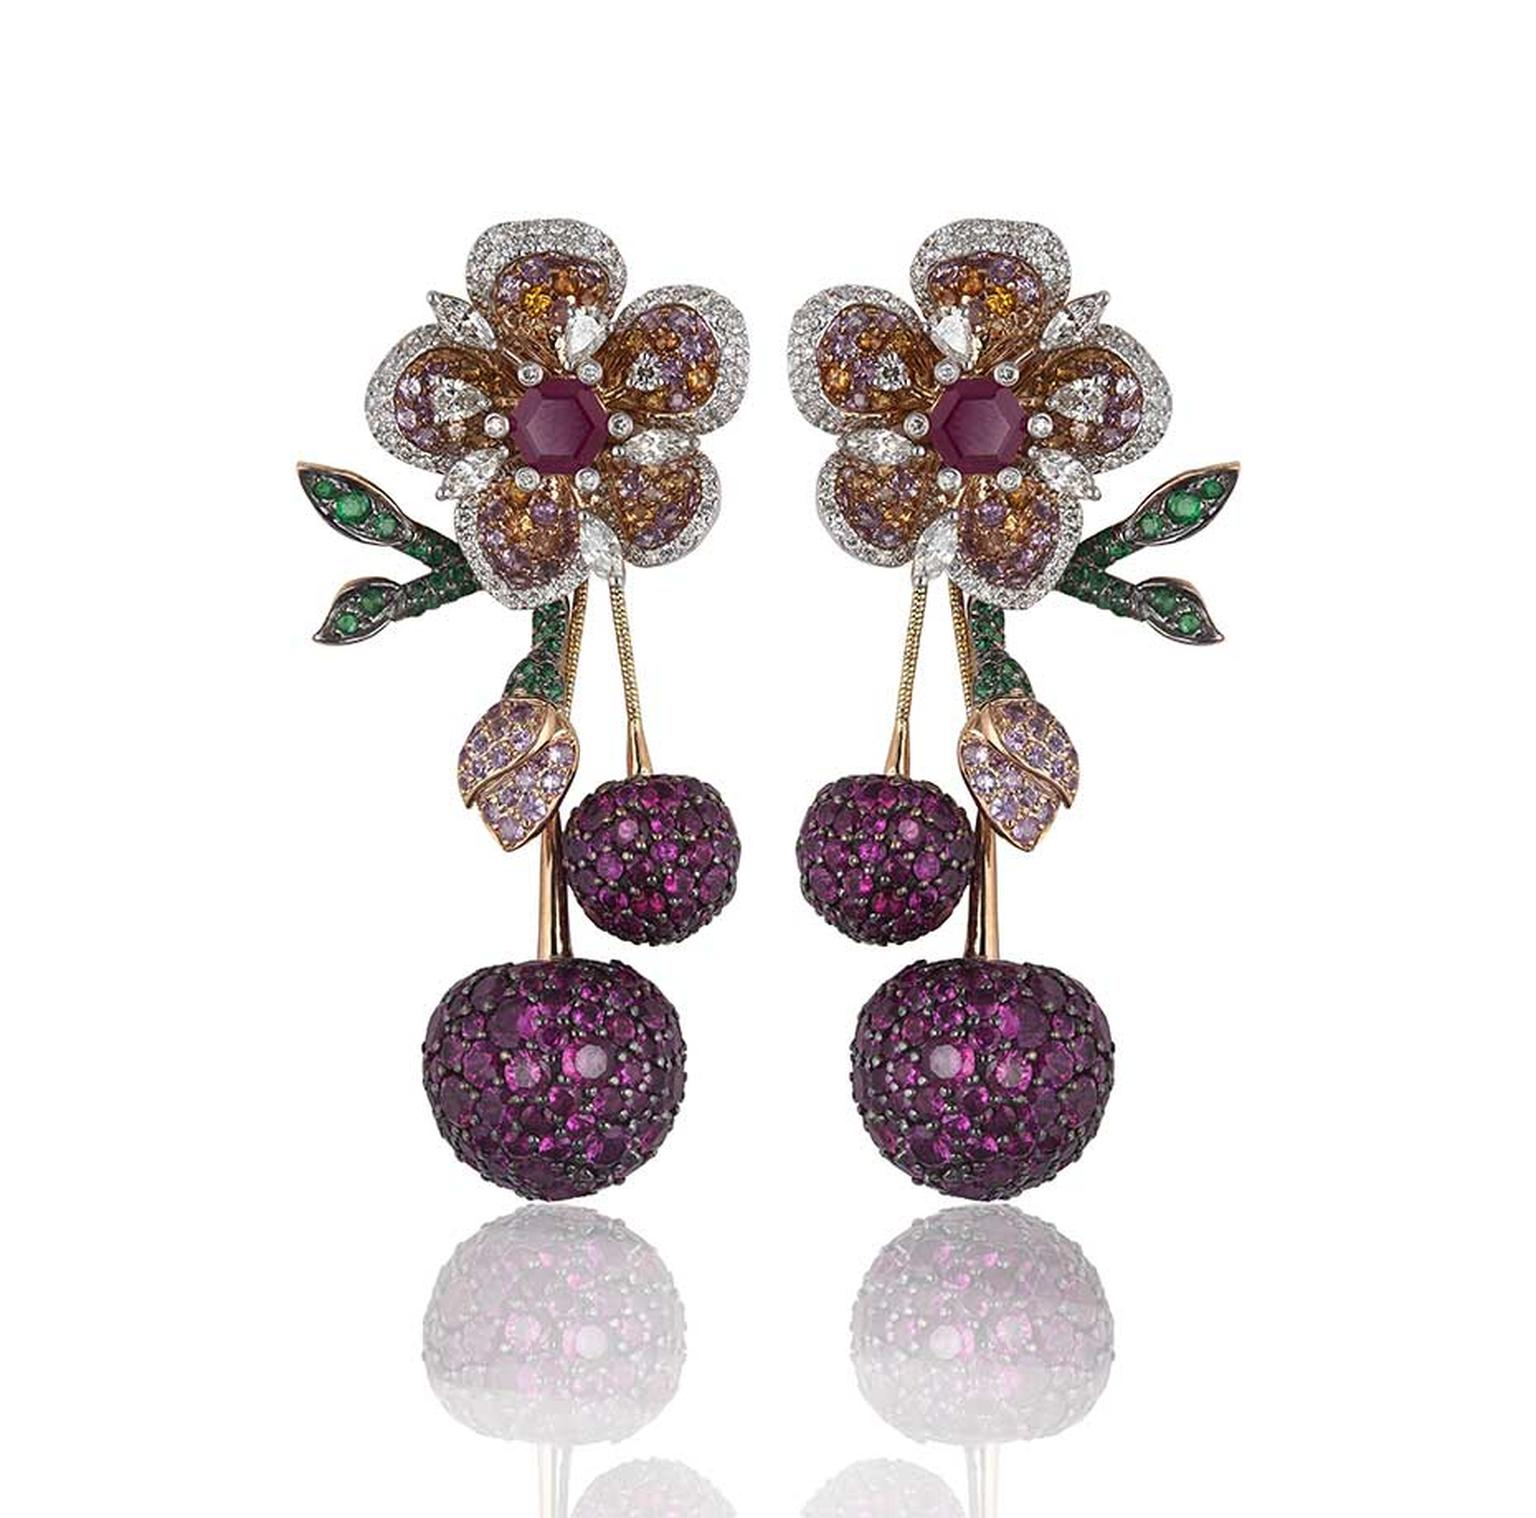 Lot 6, a pair of Gemfields Mozambican ruby, Gemfields Zambian emerald, diamond, pink sapphire and orange sapphire earrings by Mirari, being auctioned as part of a suite (estimate: INR 3,600,000 - 4,350,000; $60,000 - 73,000)